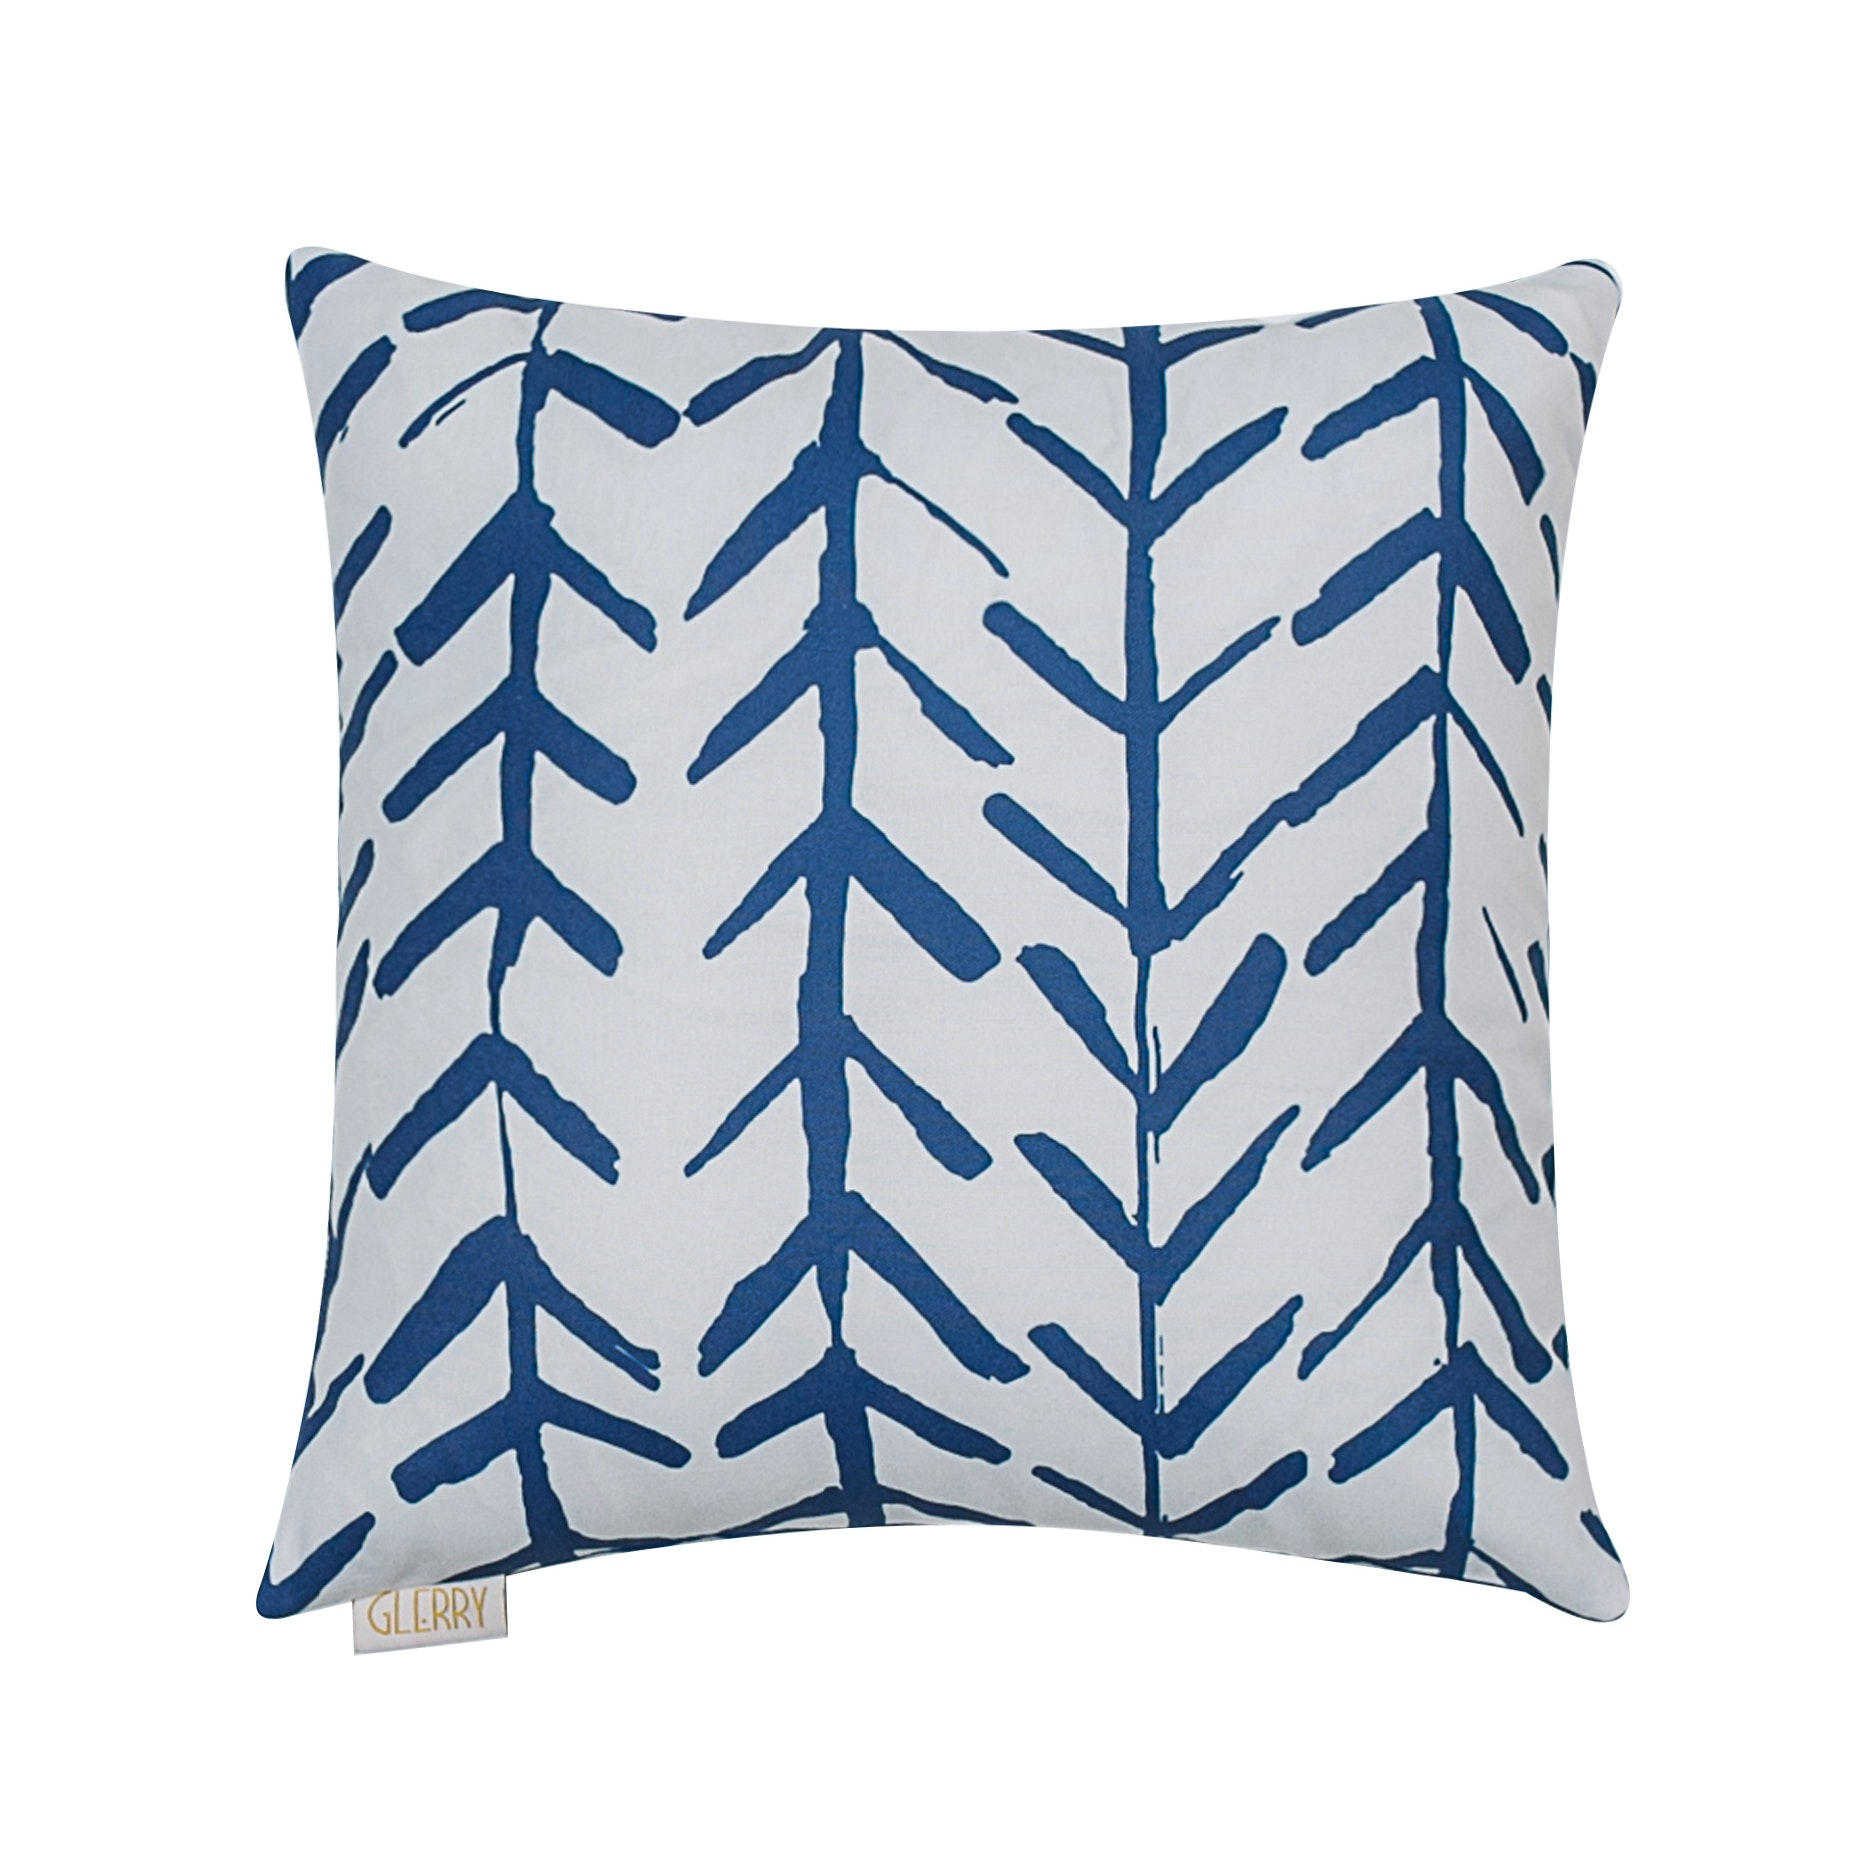 Glerry Home Decor Blue Arrow Cushion+Insert 40x40cm